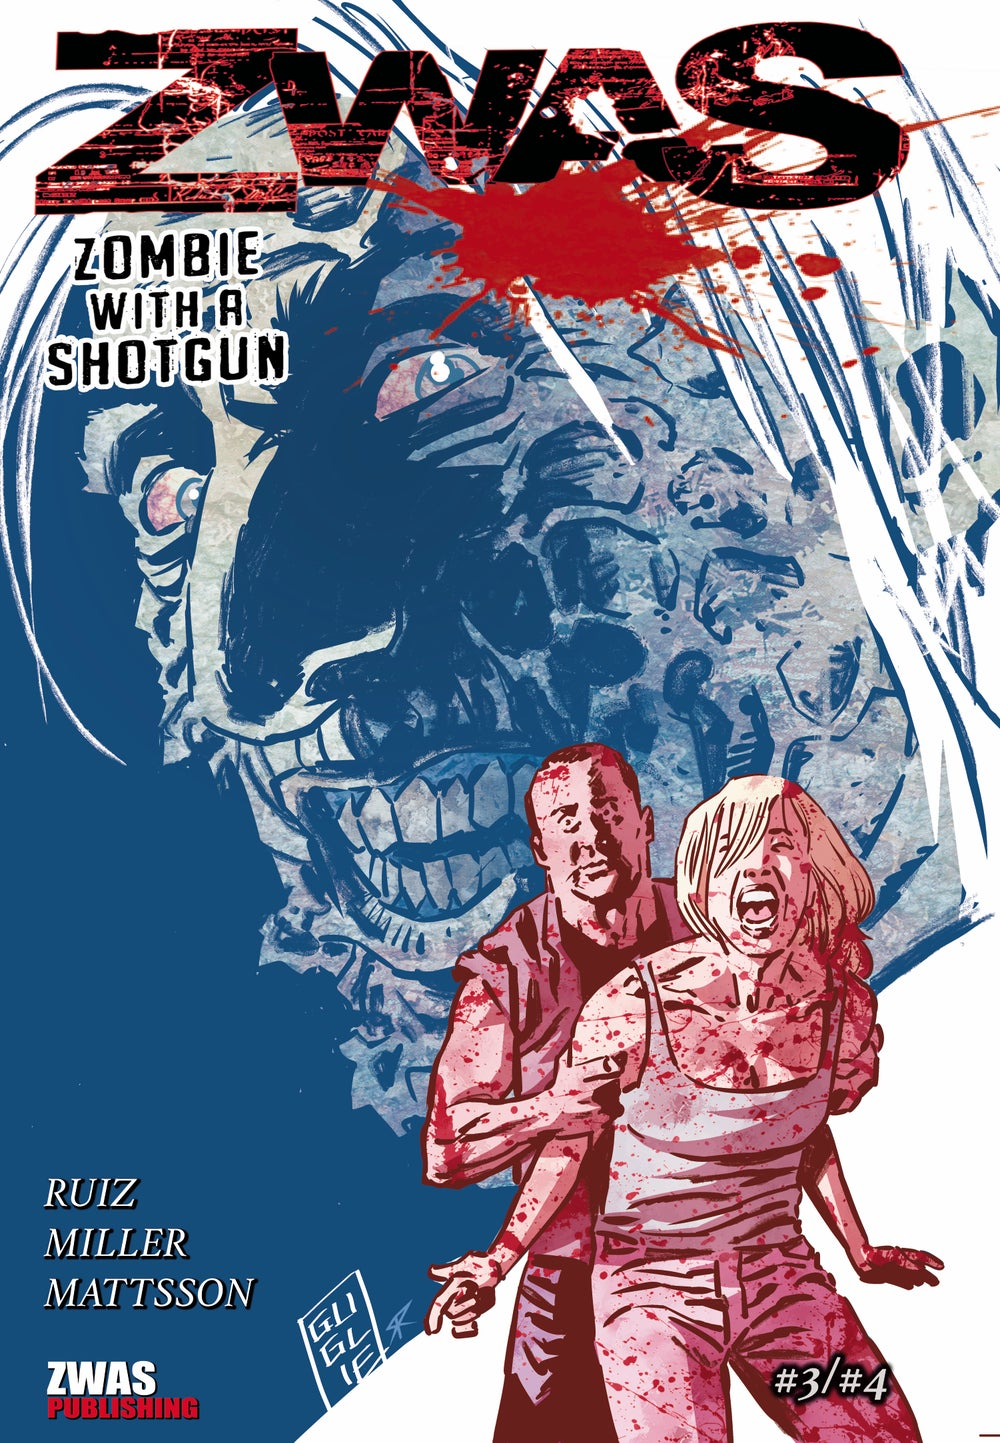 Image of Zombie with a Shotgun Comic Combo Edition with Issue's #3 and #4 in one.